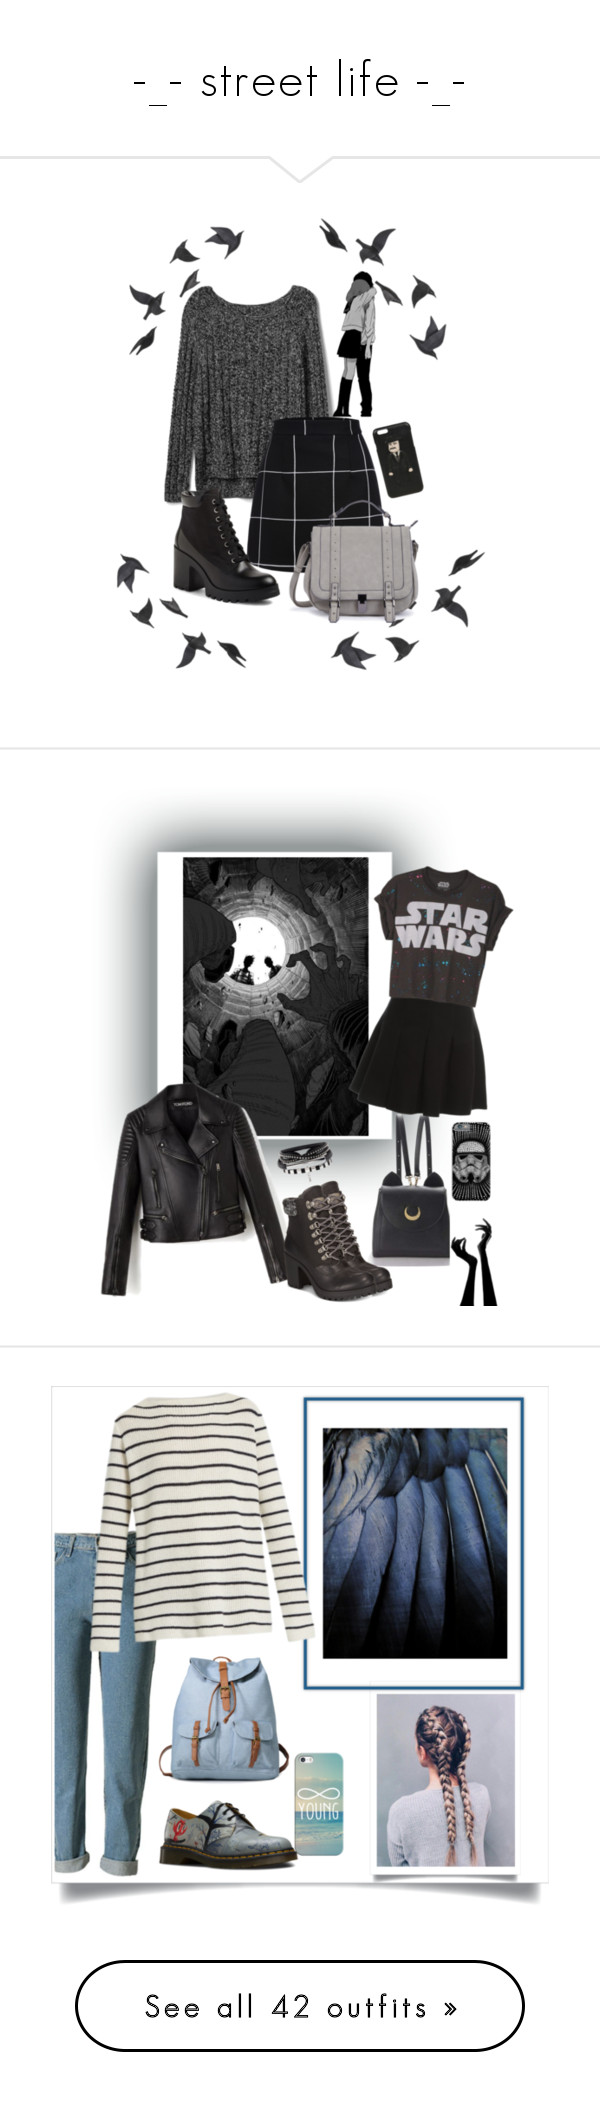 """-_- street life -_-"" by legozorg ❤ liked on Polyvore featuring Gap, BP., Jayson Home, Dolce&Gabbana, WithChic, Alexander Wang, ZiGiny, shaheenk, Dr. Martens and Casetify"